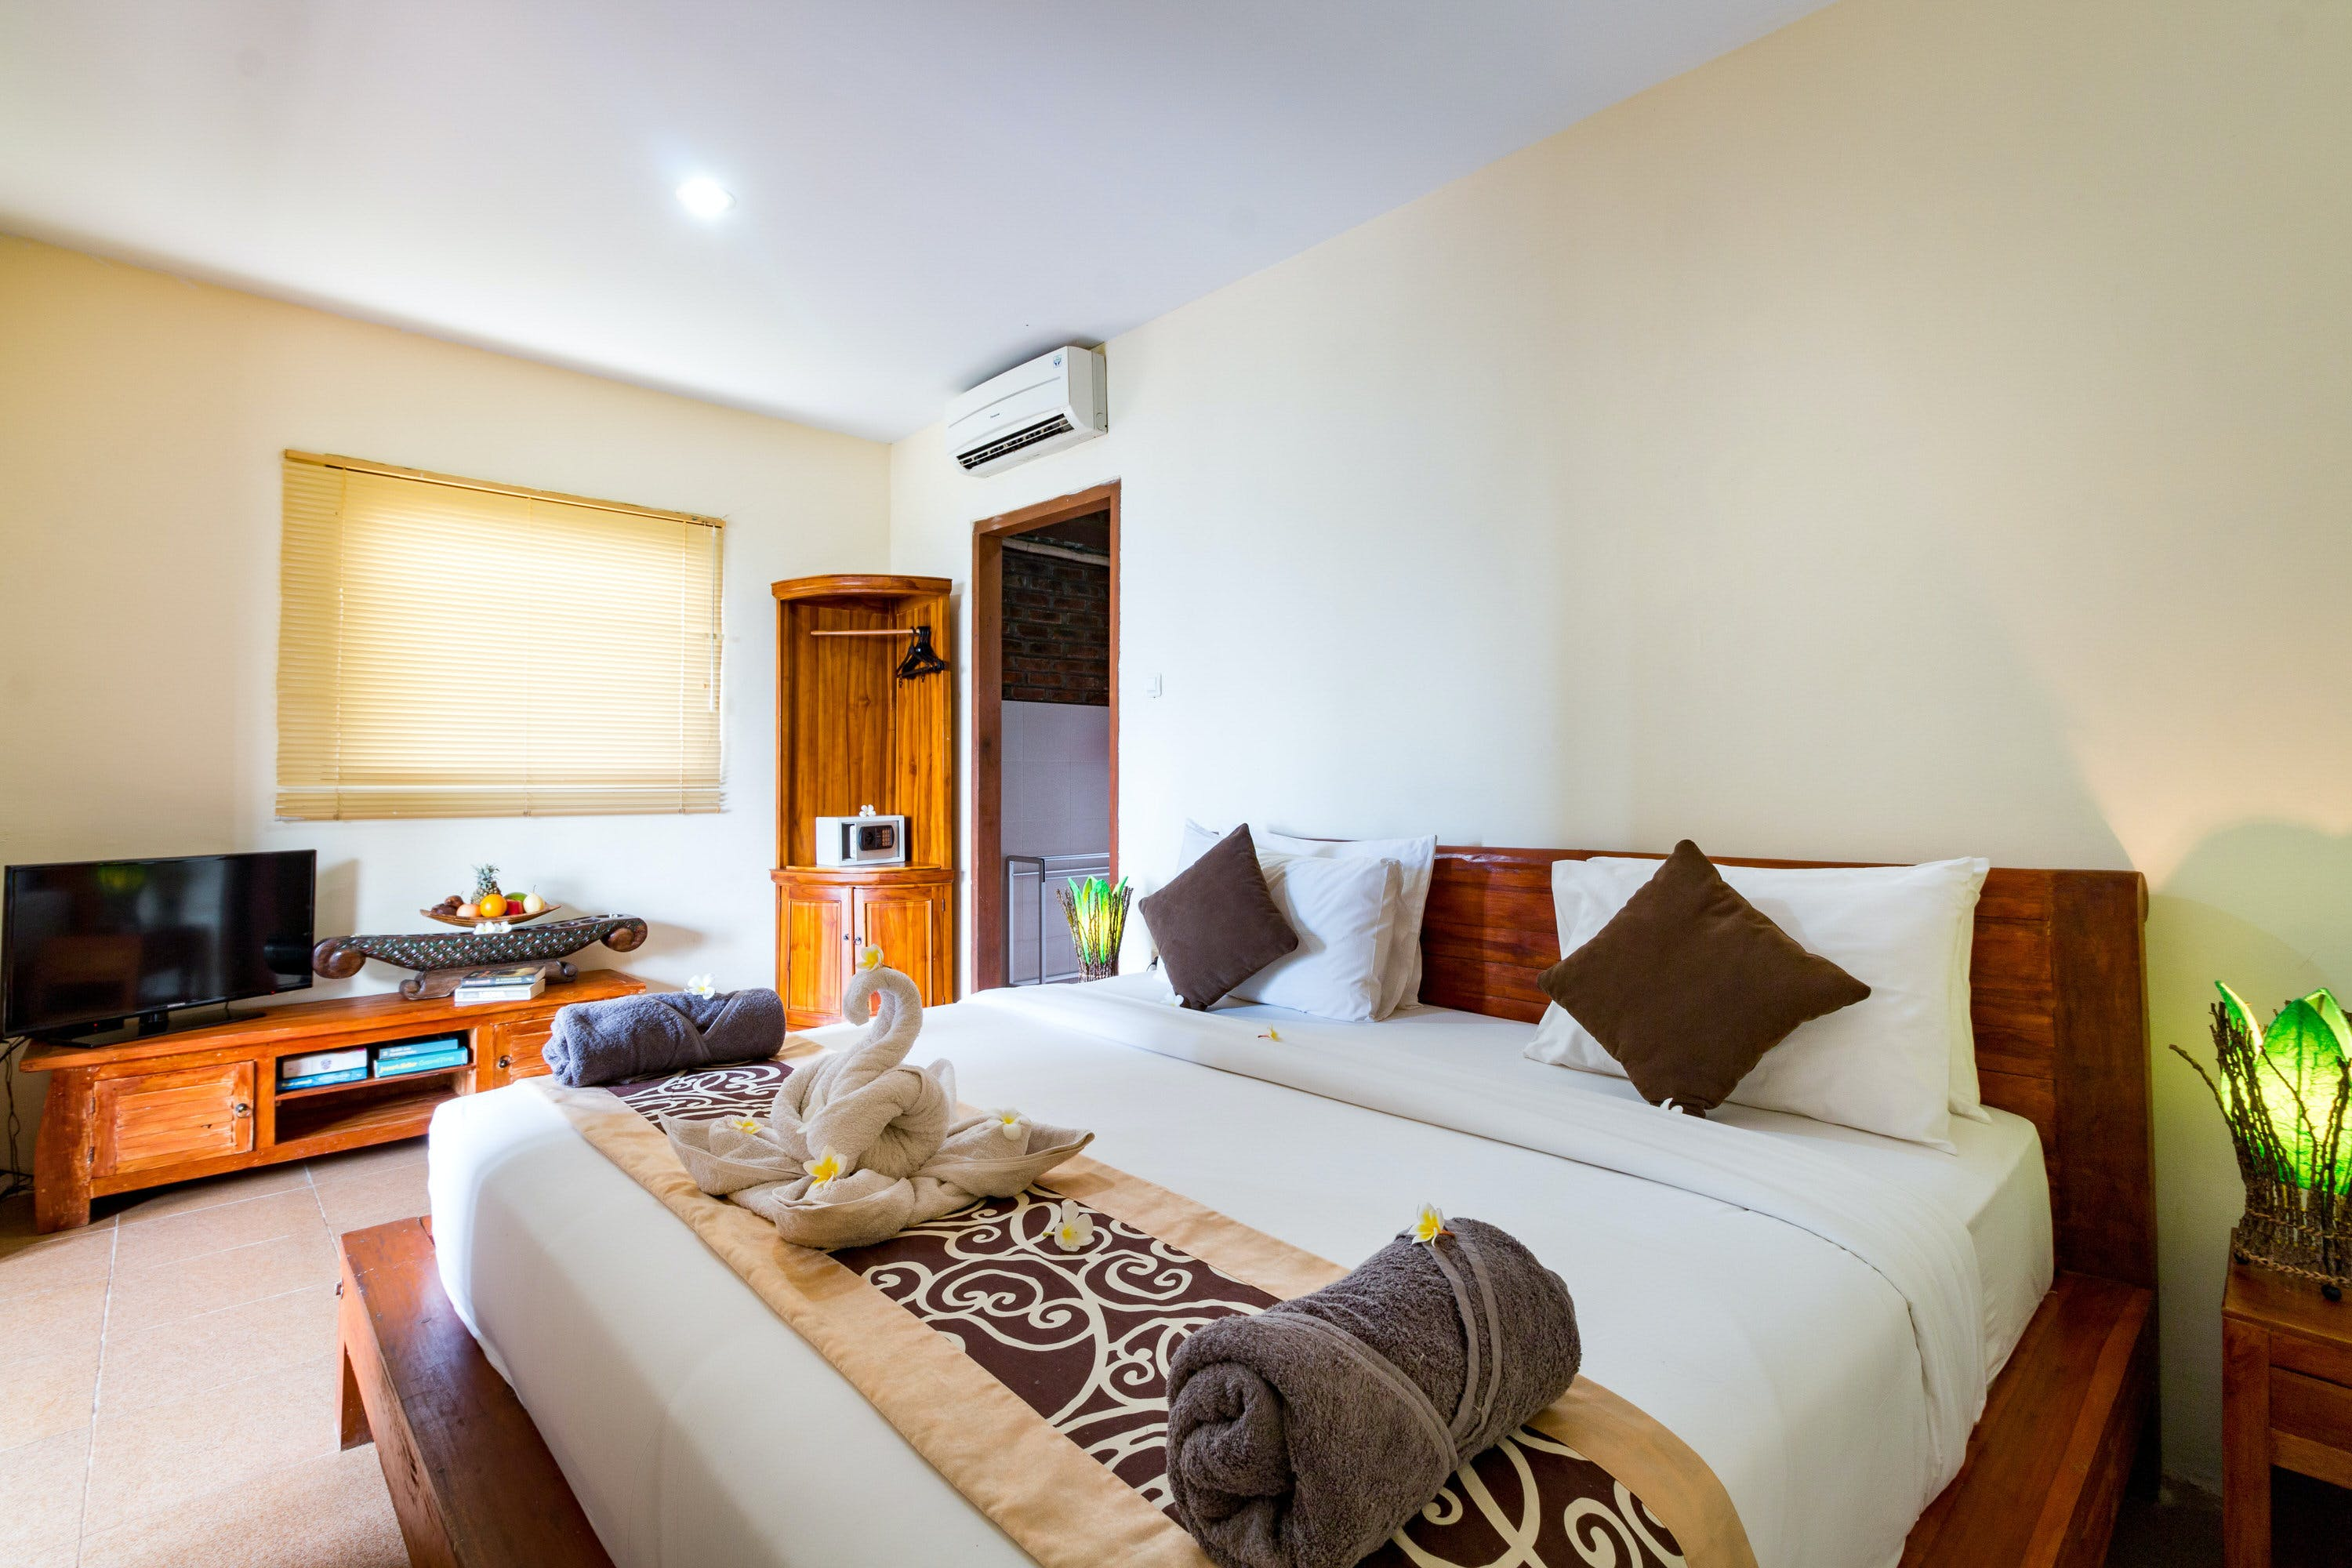 Ocean View Room at Sea Medewi Resort, best hotel for surfing, yoga, and enjoy Medewi beach in Negara